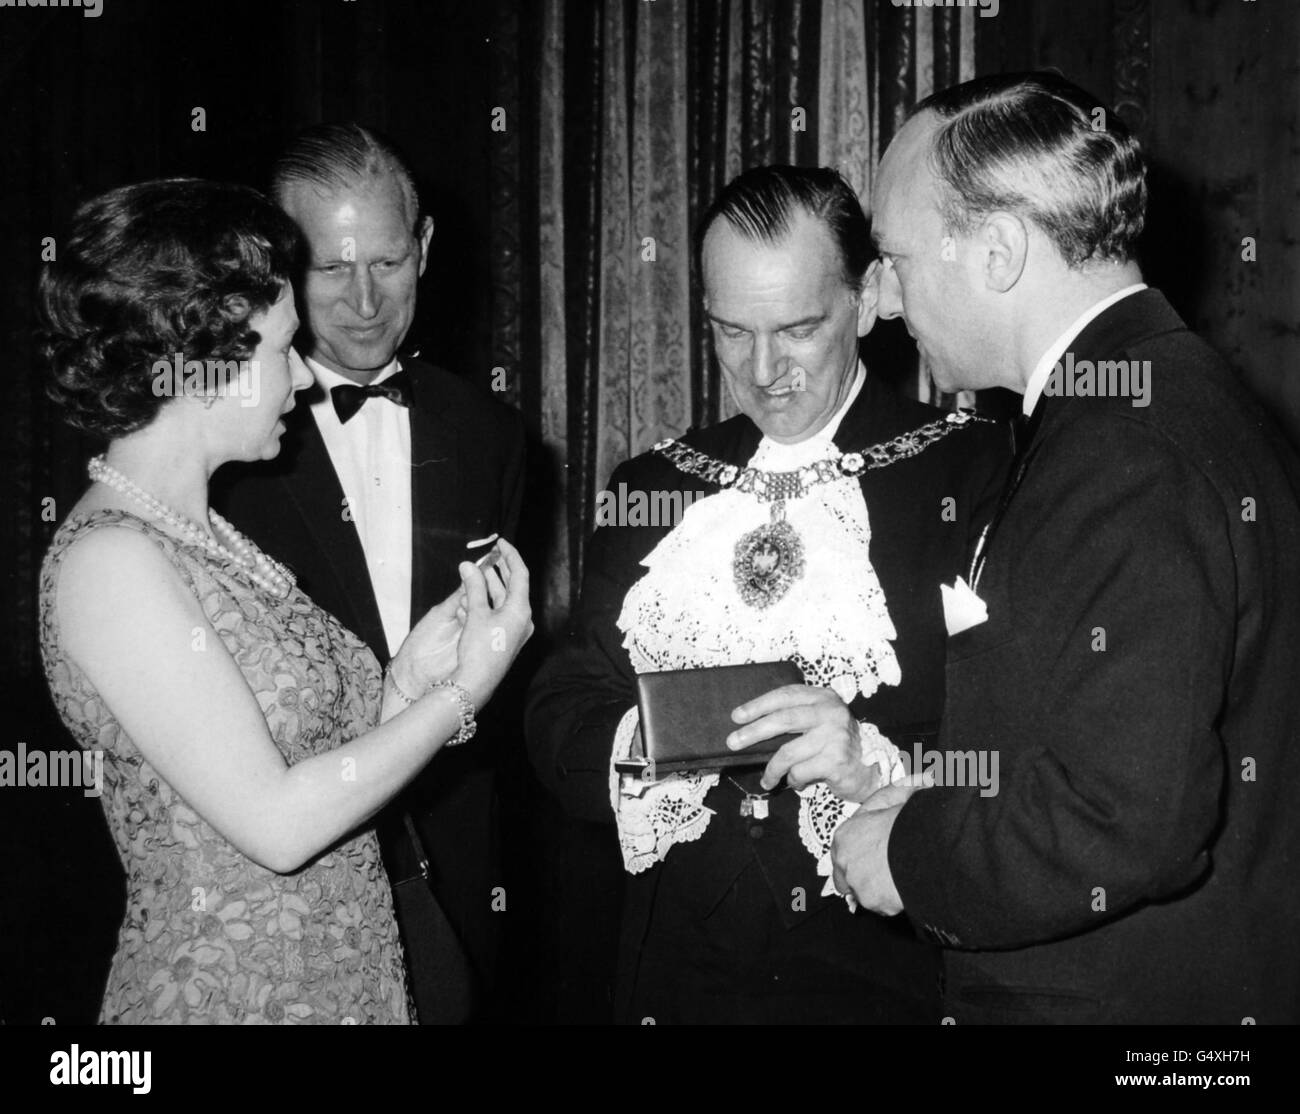 Royalty - Queen Elizabeth II - Church Music Trust, Mansion House, London - Stock Image